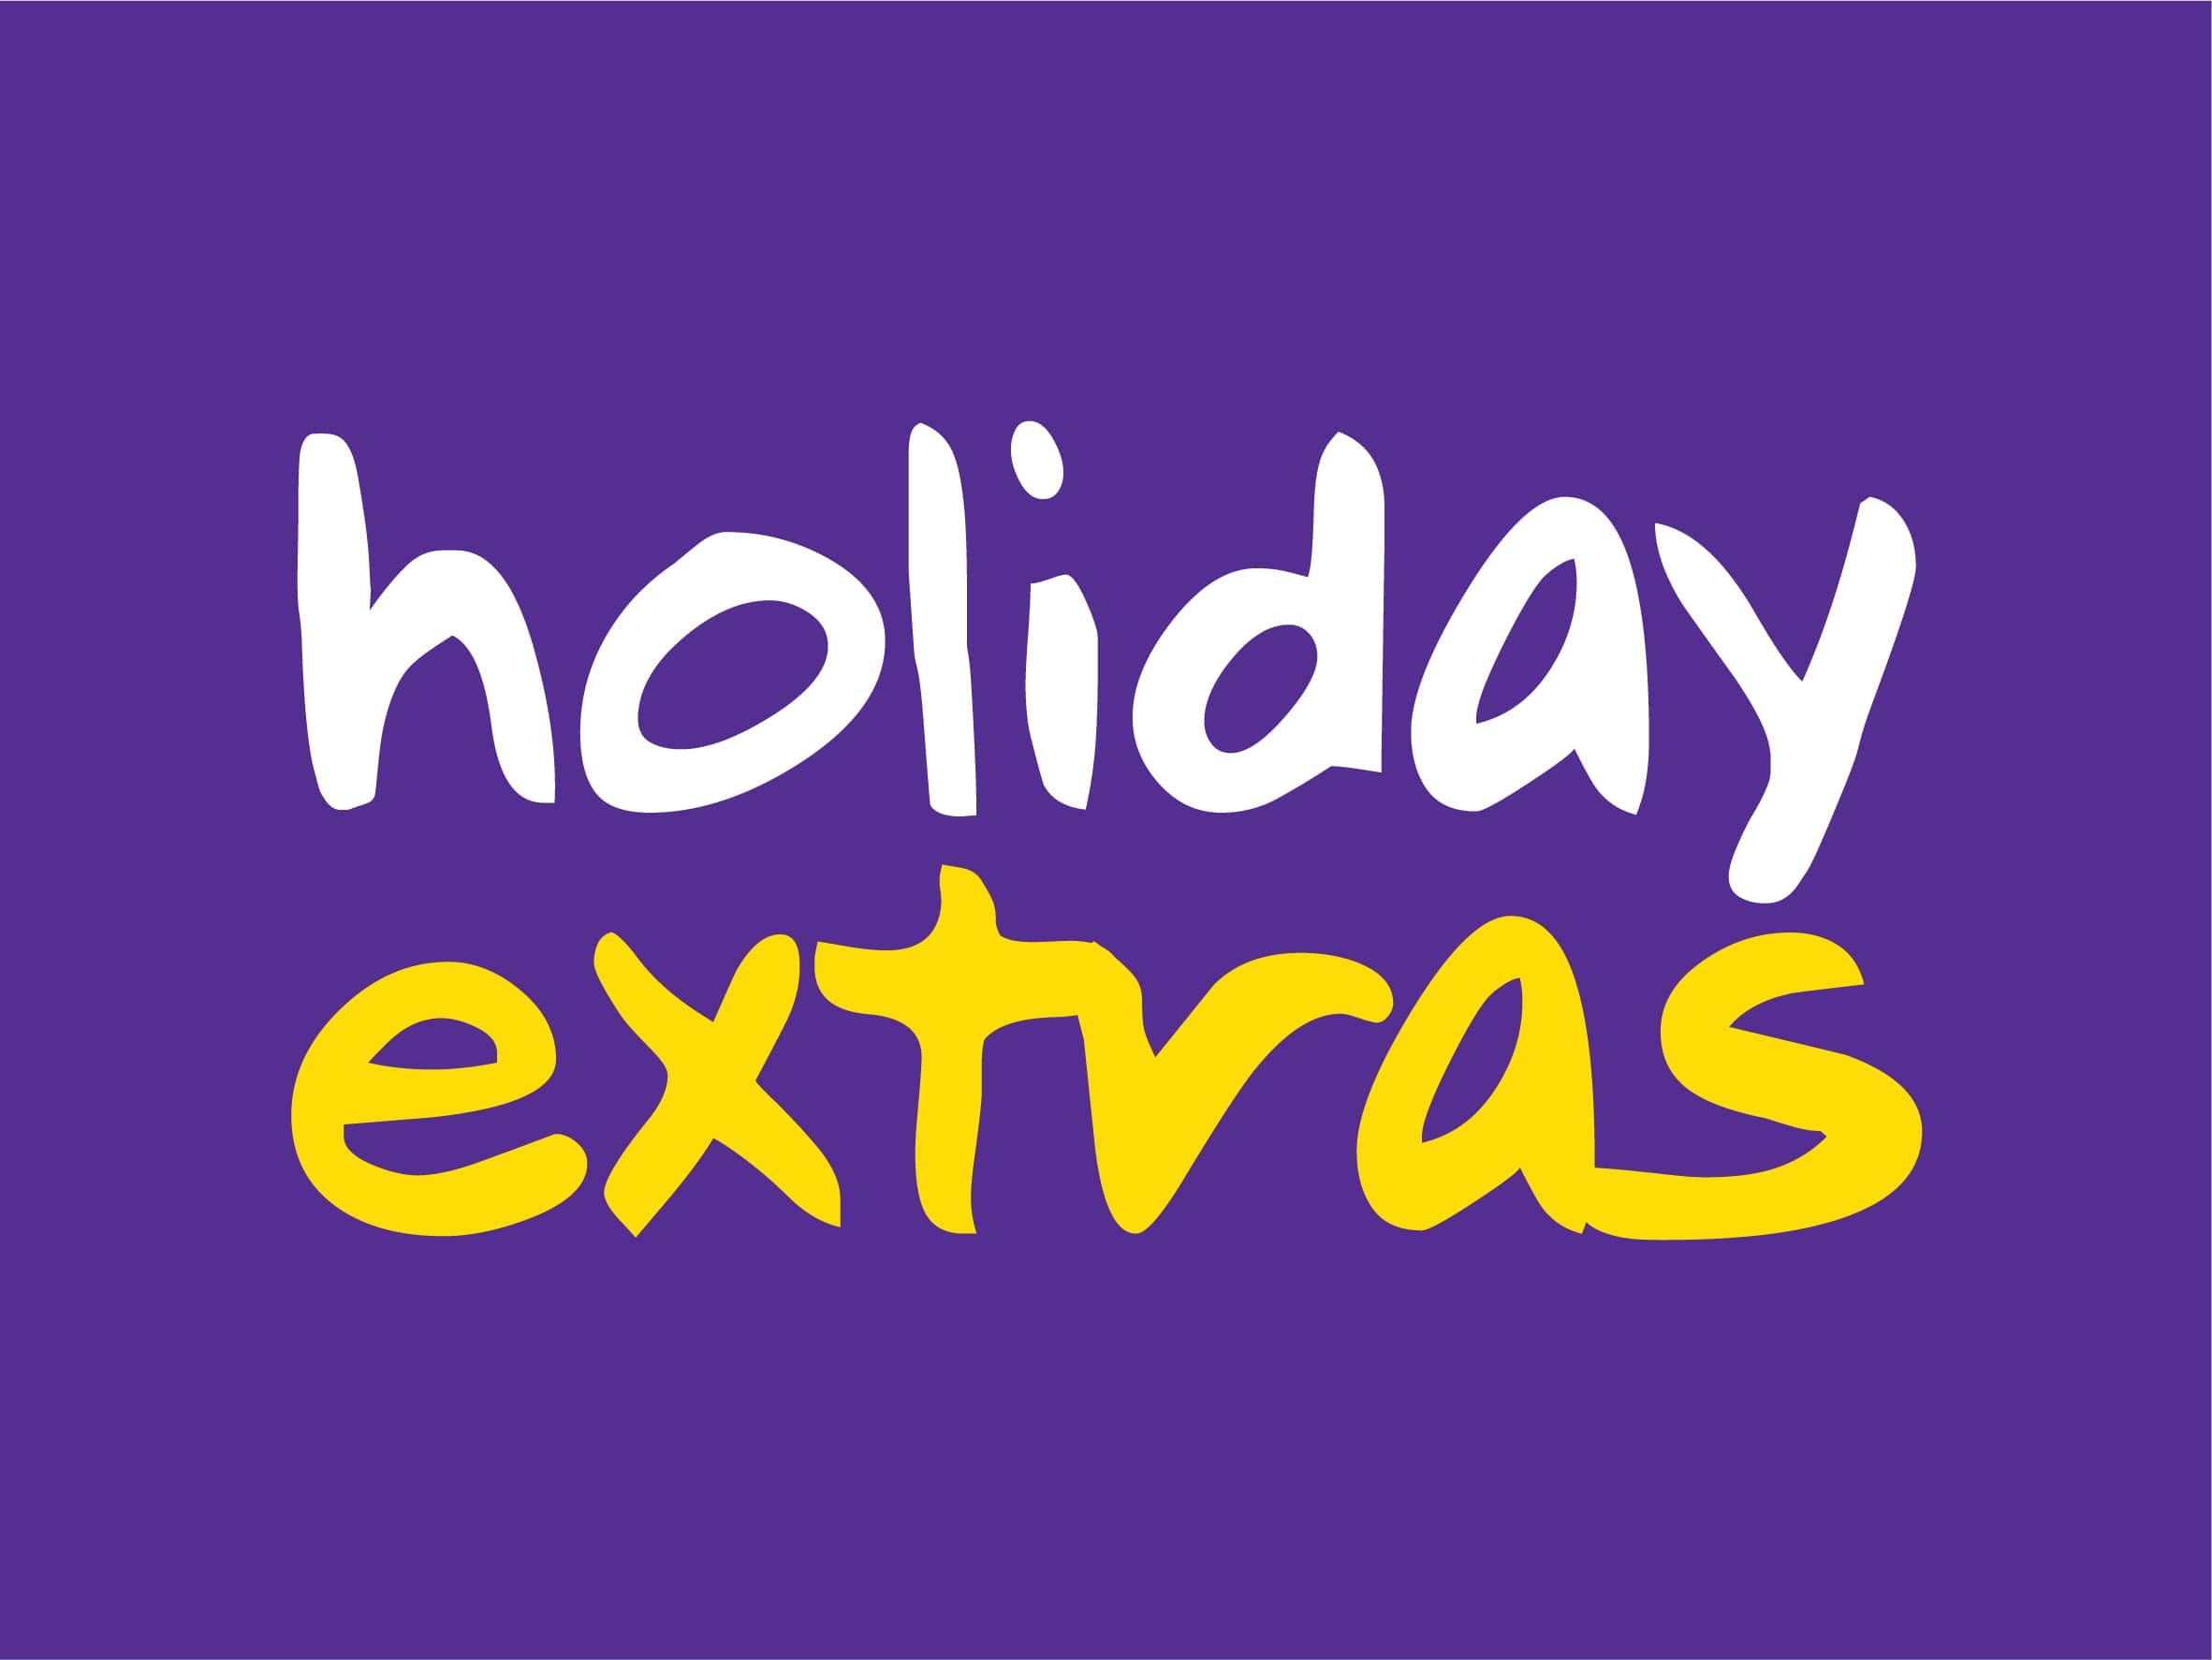 holiday extras komma Kunde